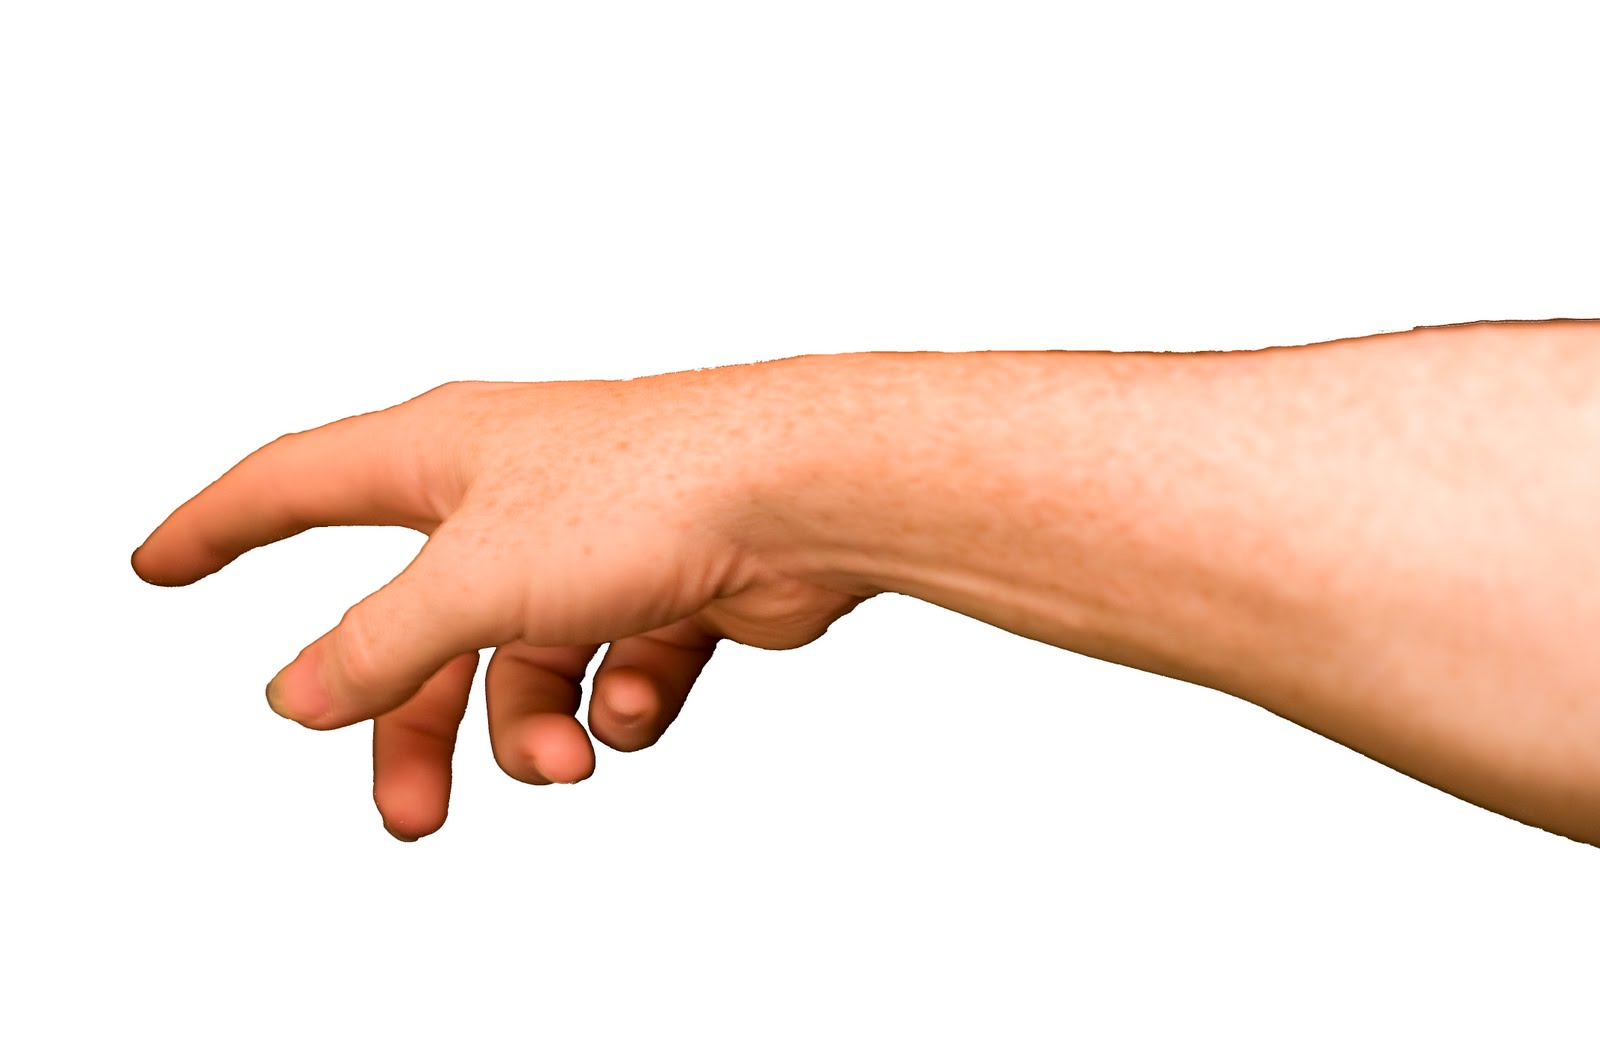 Free Arm Pointing Png, Download Free Clip Art, Free Clip Art.